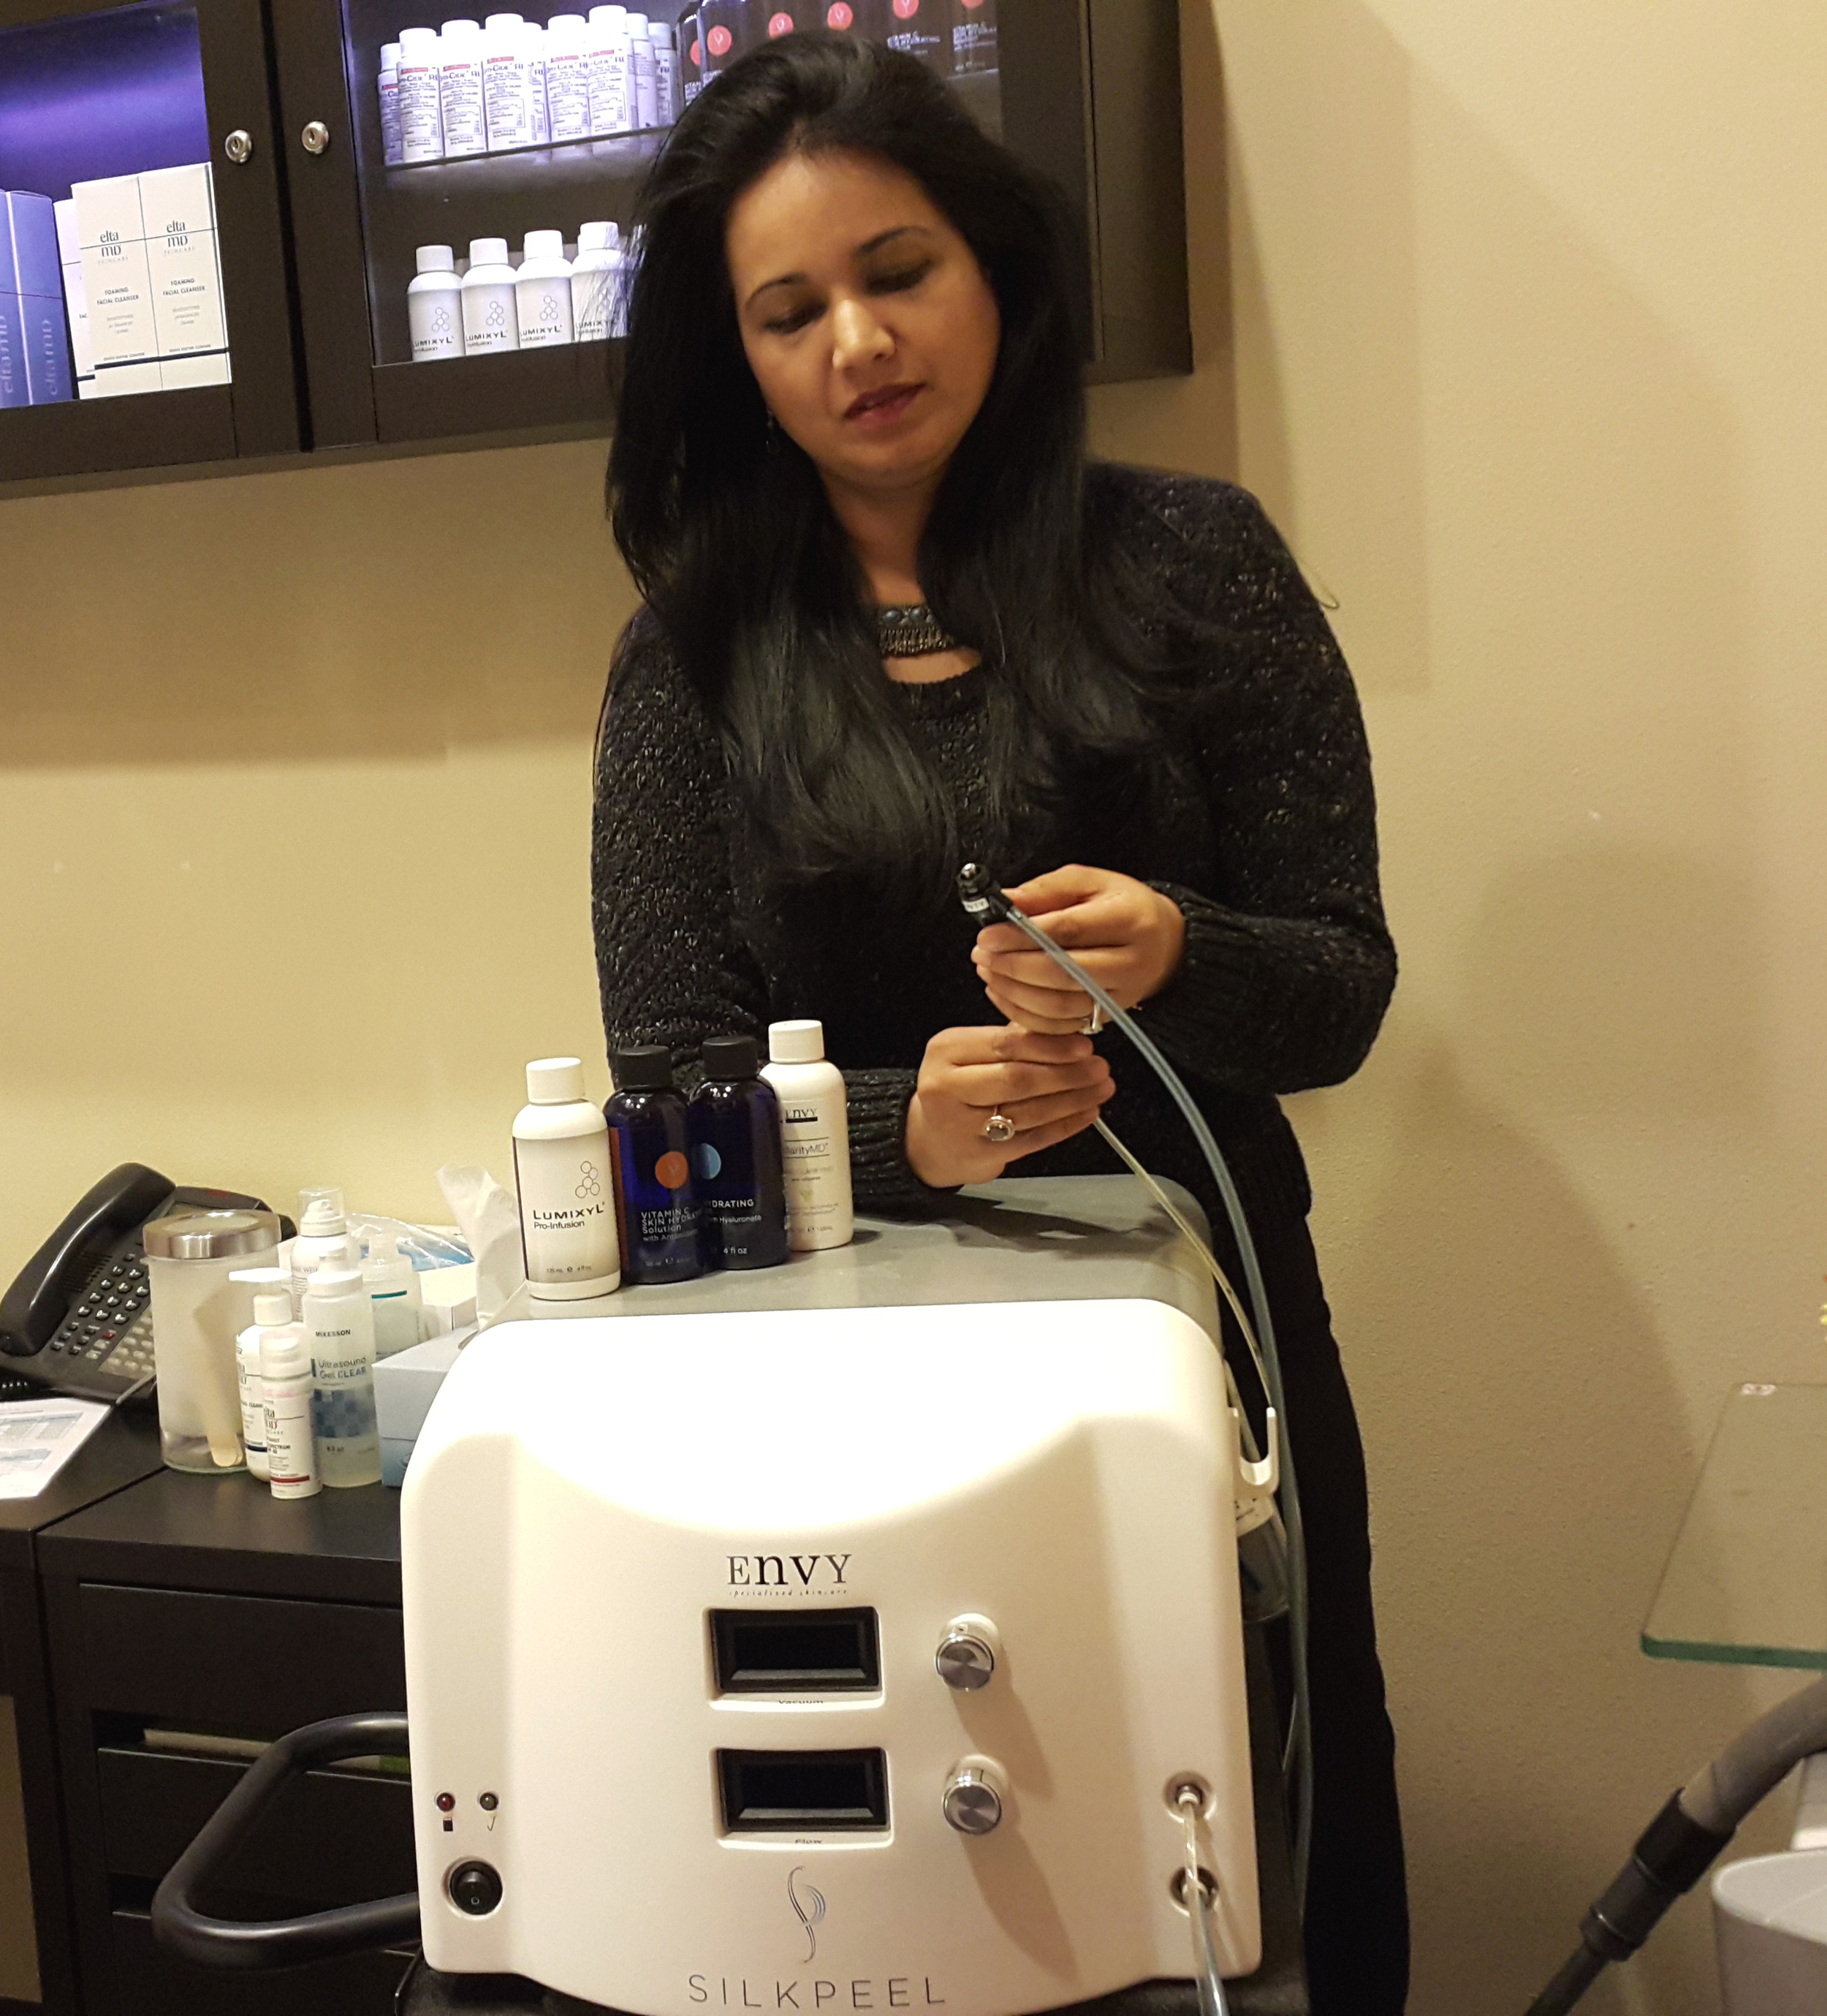 Here Dr. Khan prepares the SilkPeel machine for a client.